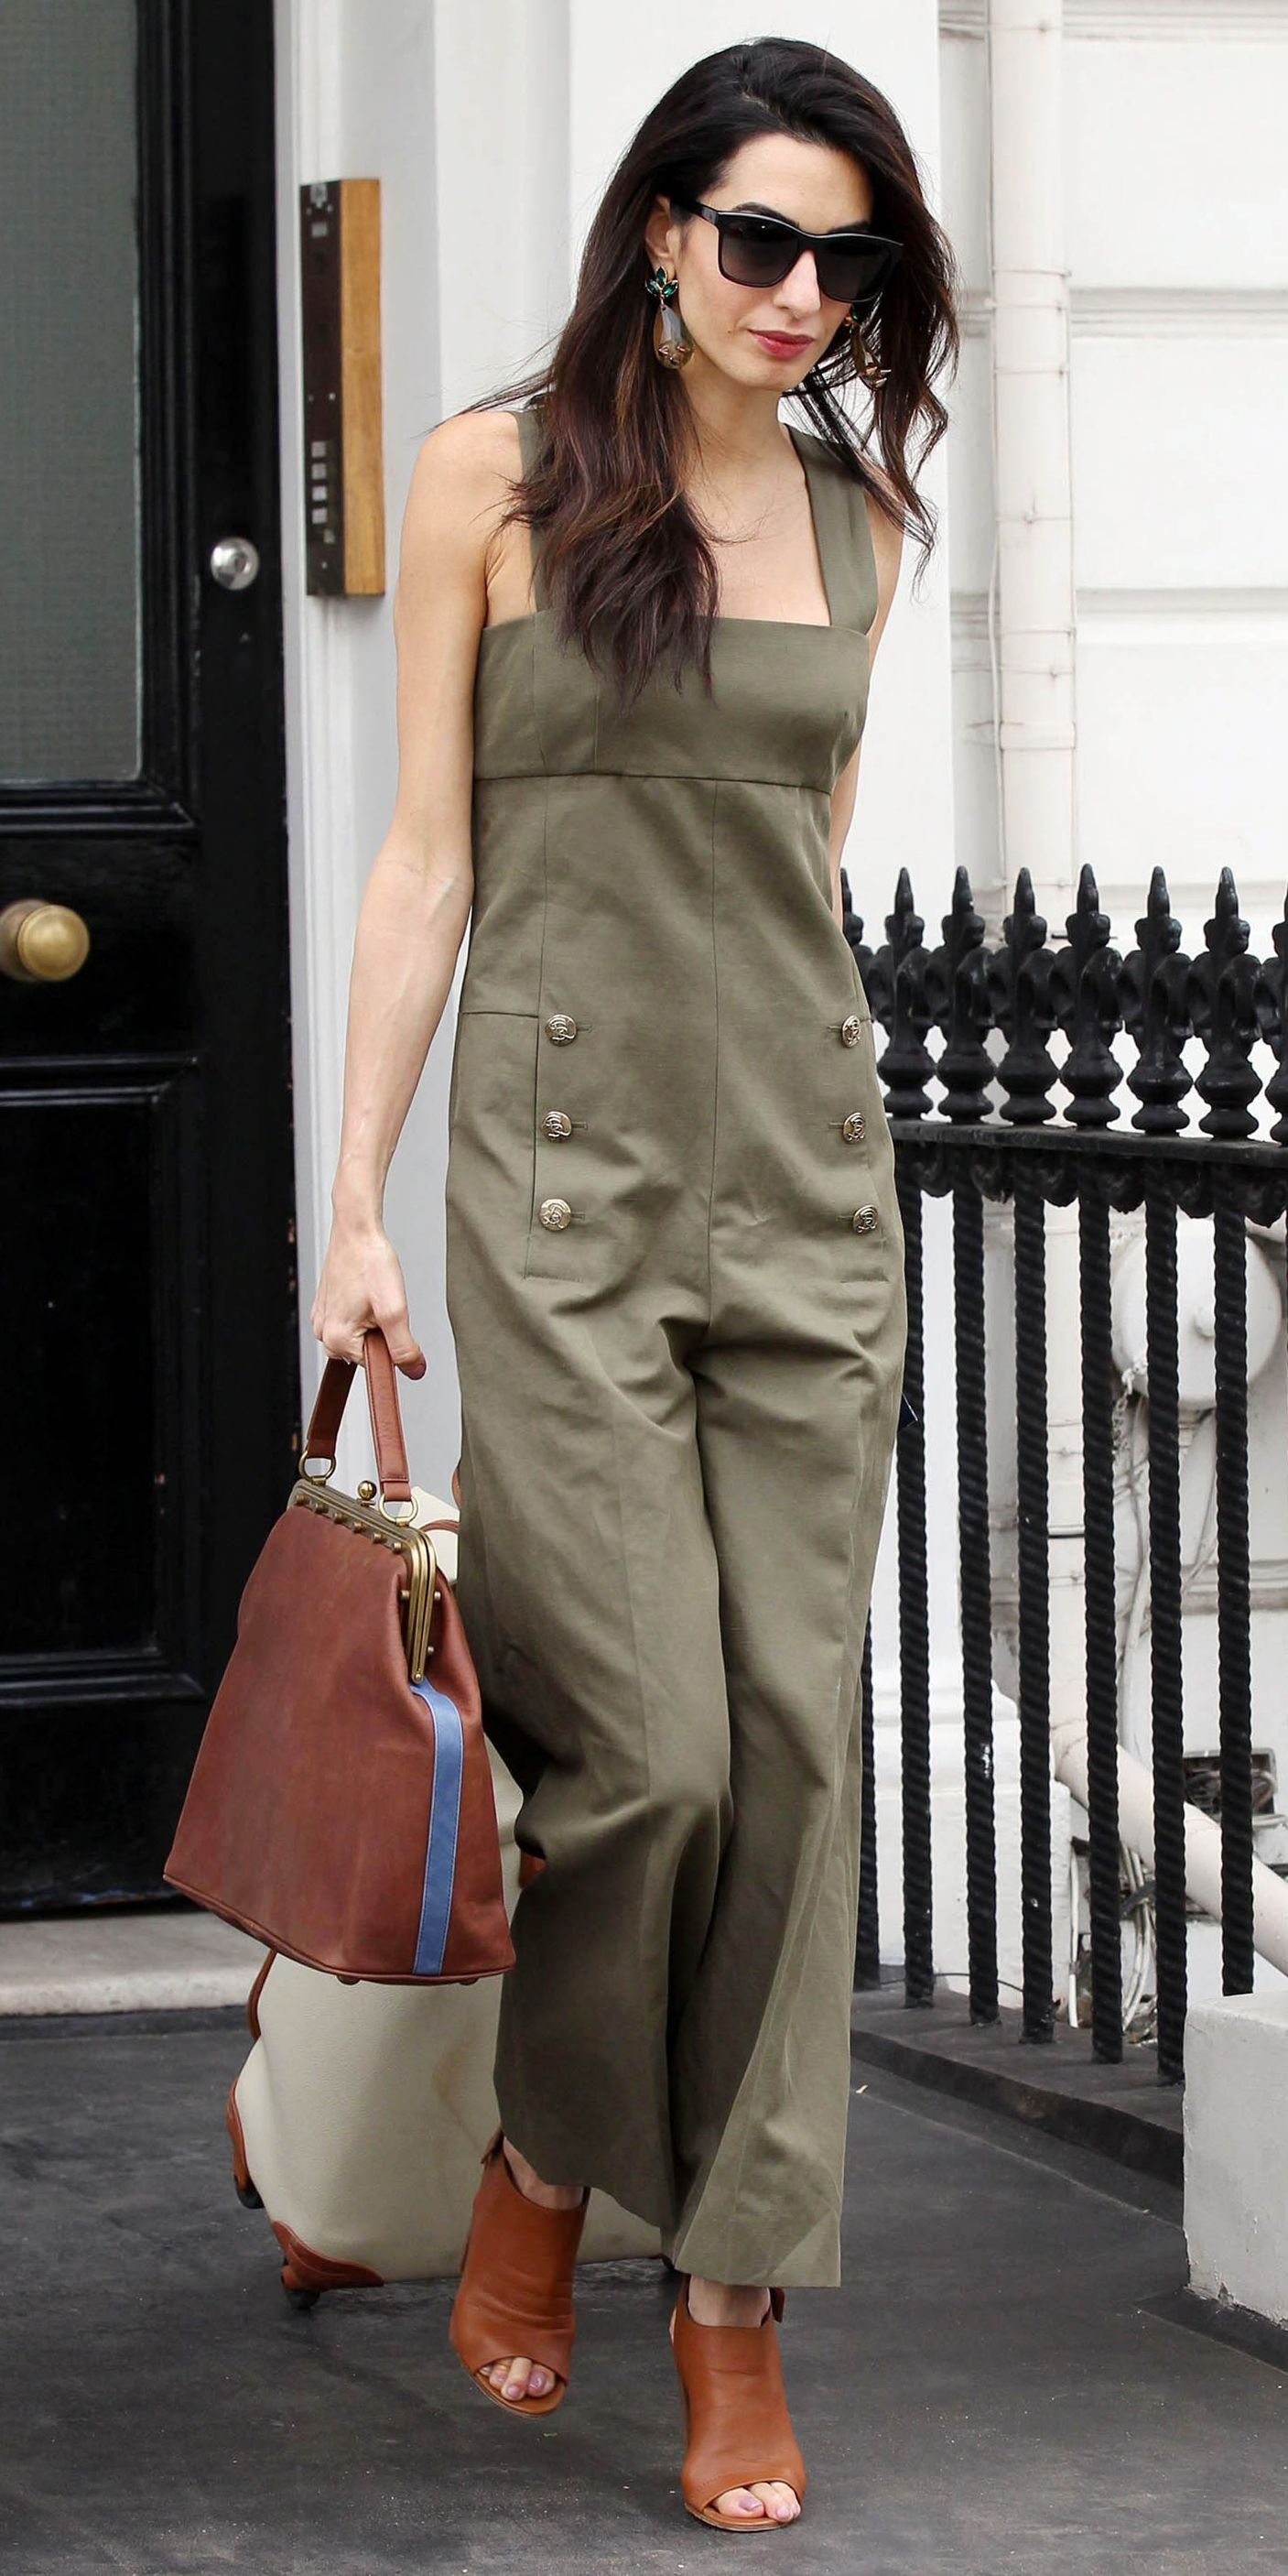 24986b9cfd3e Amal Clooney s Most Stylish Looks Ever - June 25